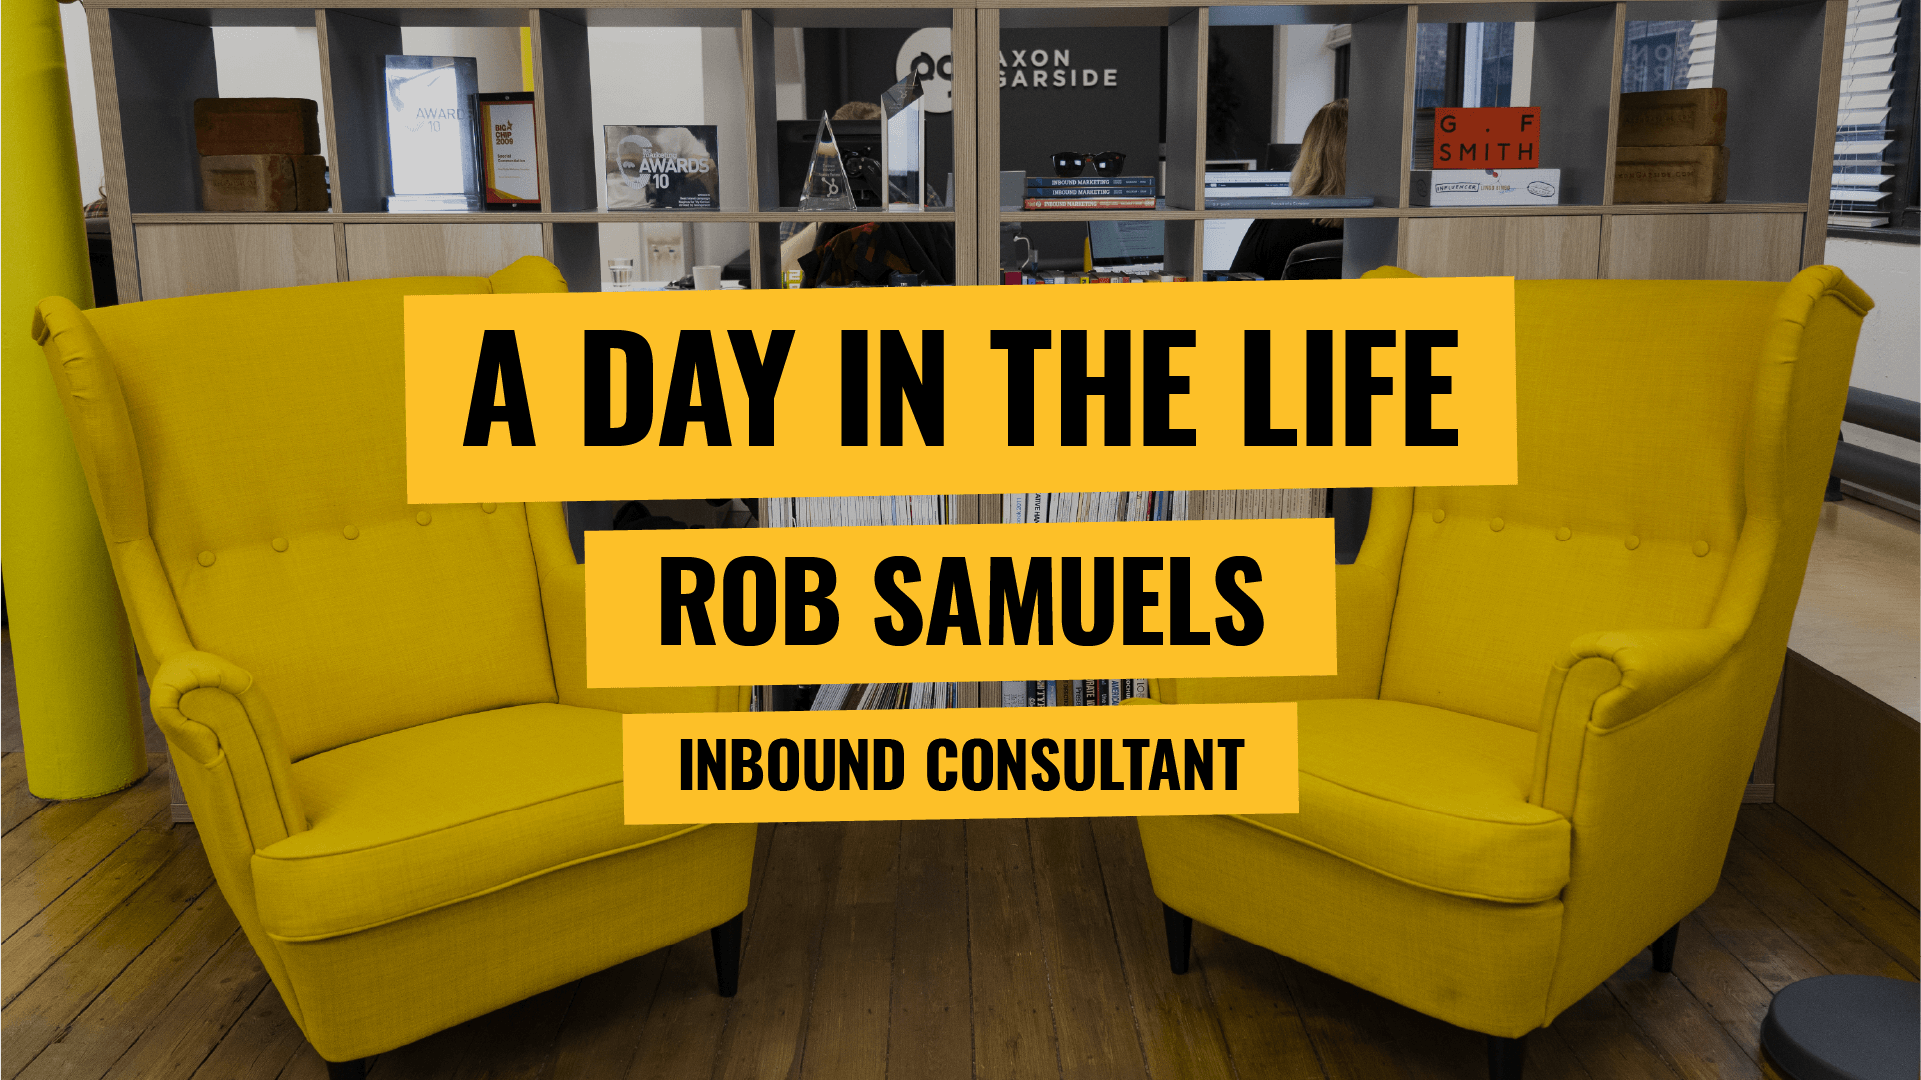 [Video] A Day in the Life - Inbound Consultant Rob Samuels